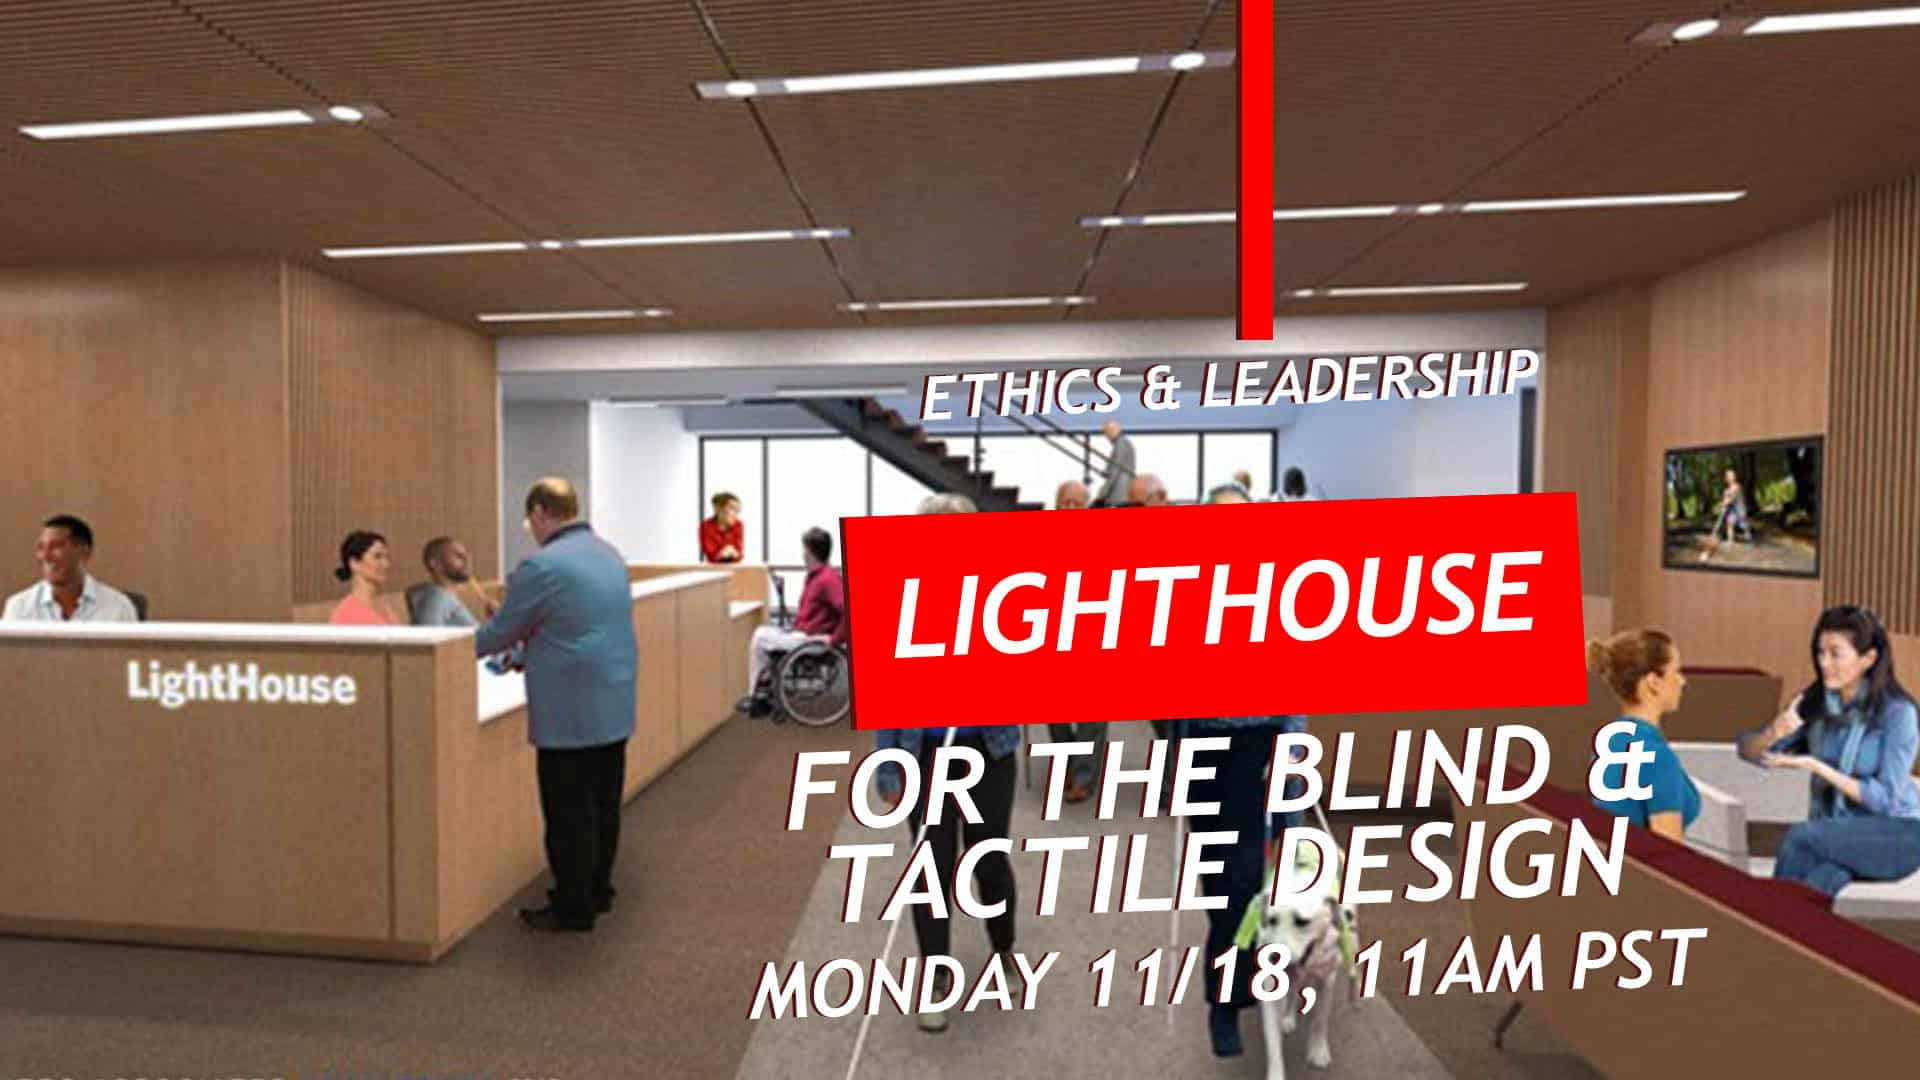 Ethics and Leadership Panel: LightHouse for the Blind & Tactile Design/Graphics